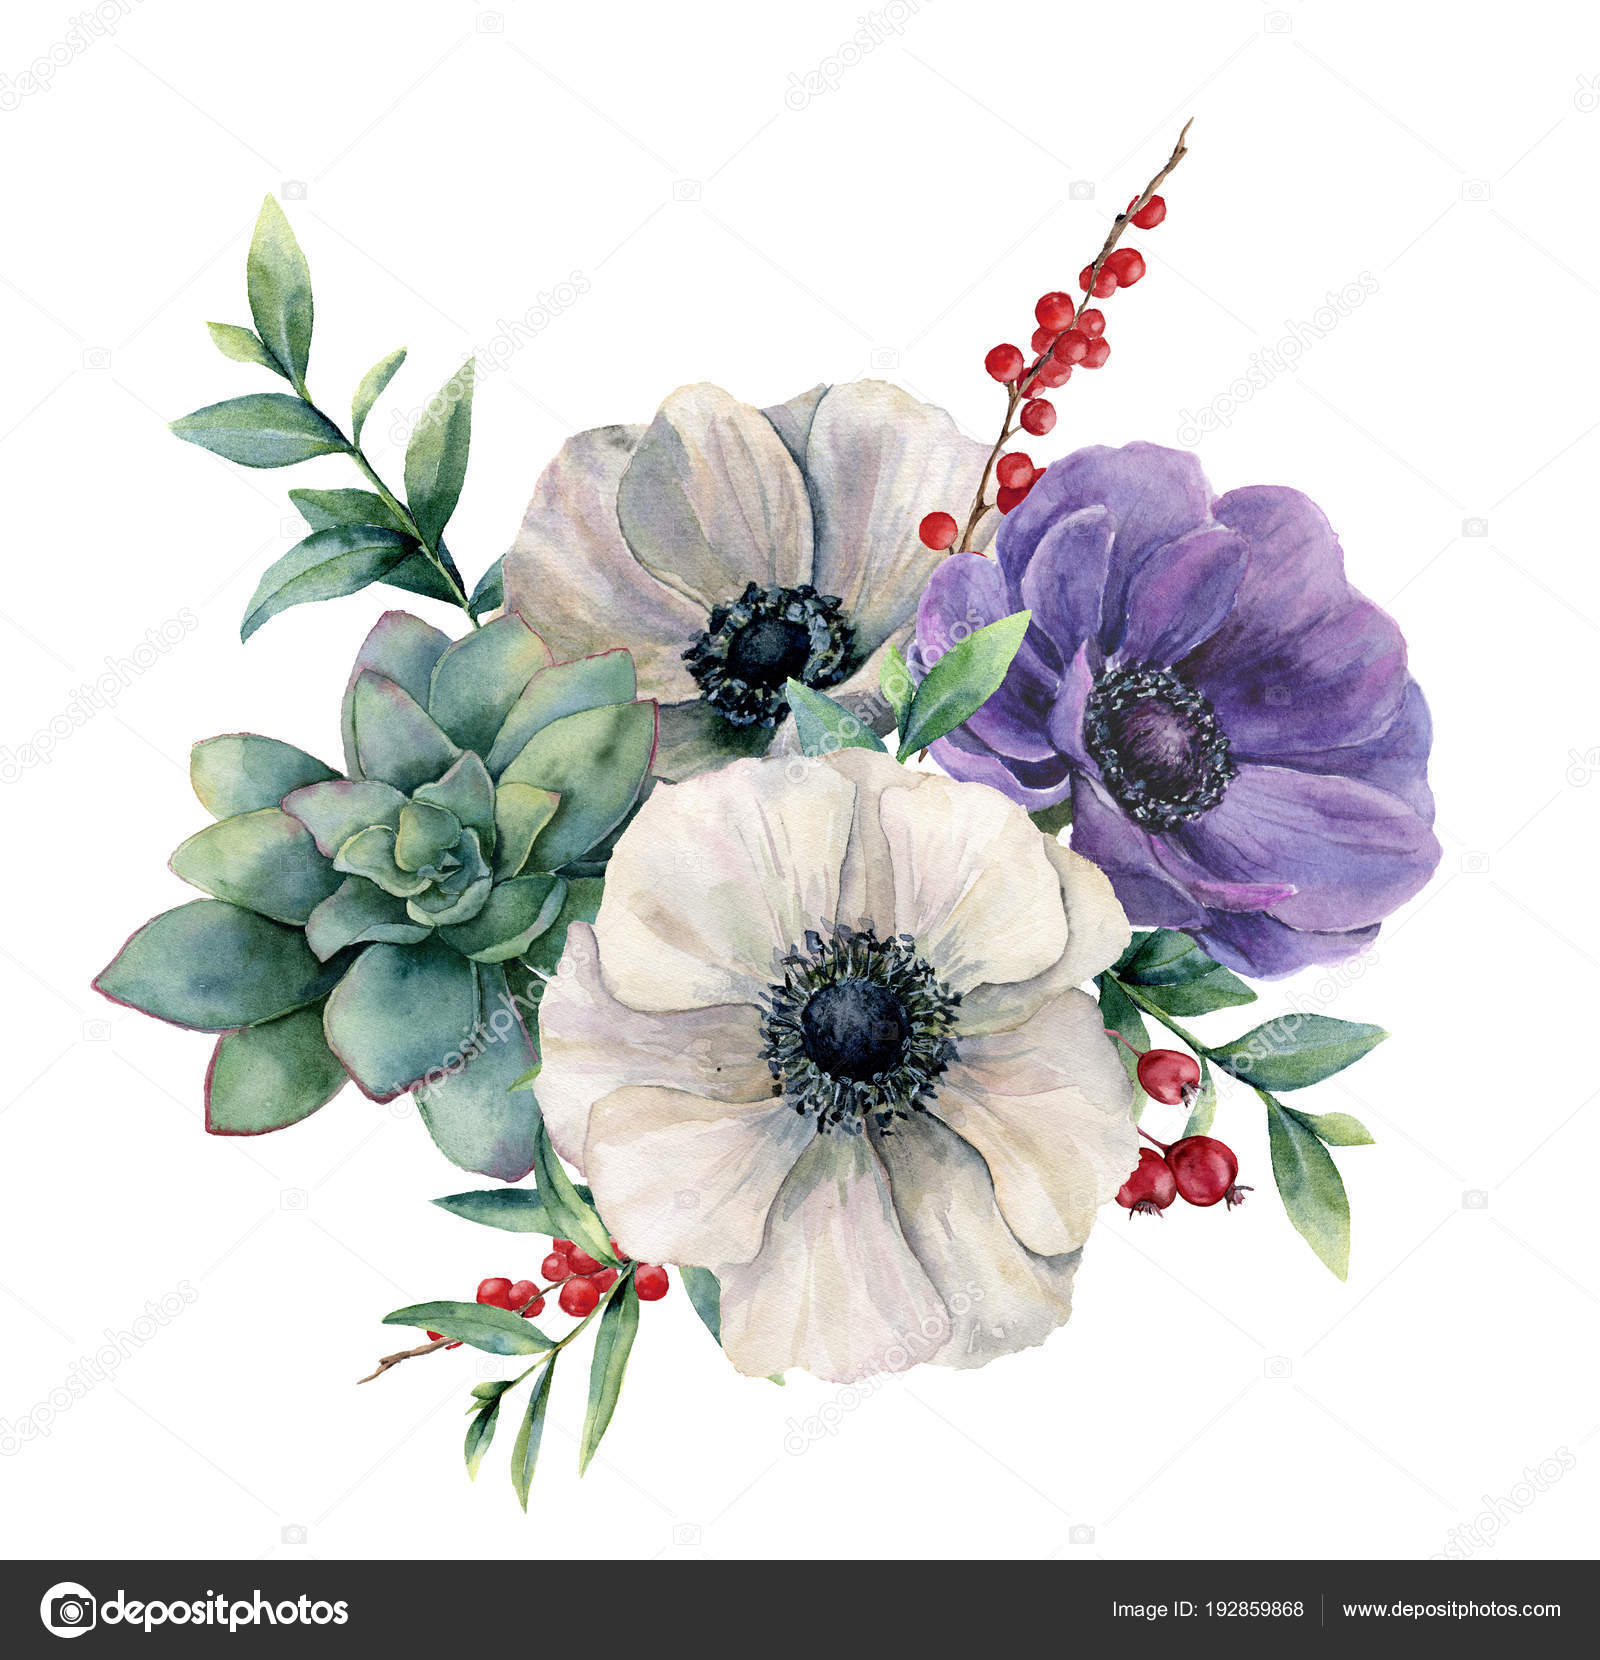 Watercolor White Anemone And Succulent Bouquet Hand Painted Colorful Flower Eucalyptus Leaves And Berries Isolated On White Background Illustration For Design Fabric Print Or Background Stock Photo Image By C Derbisheva 192859868